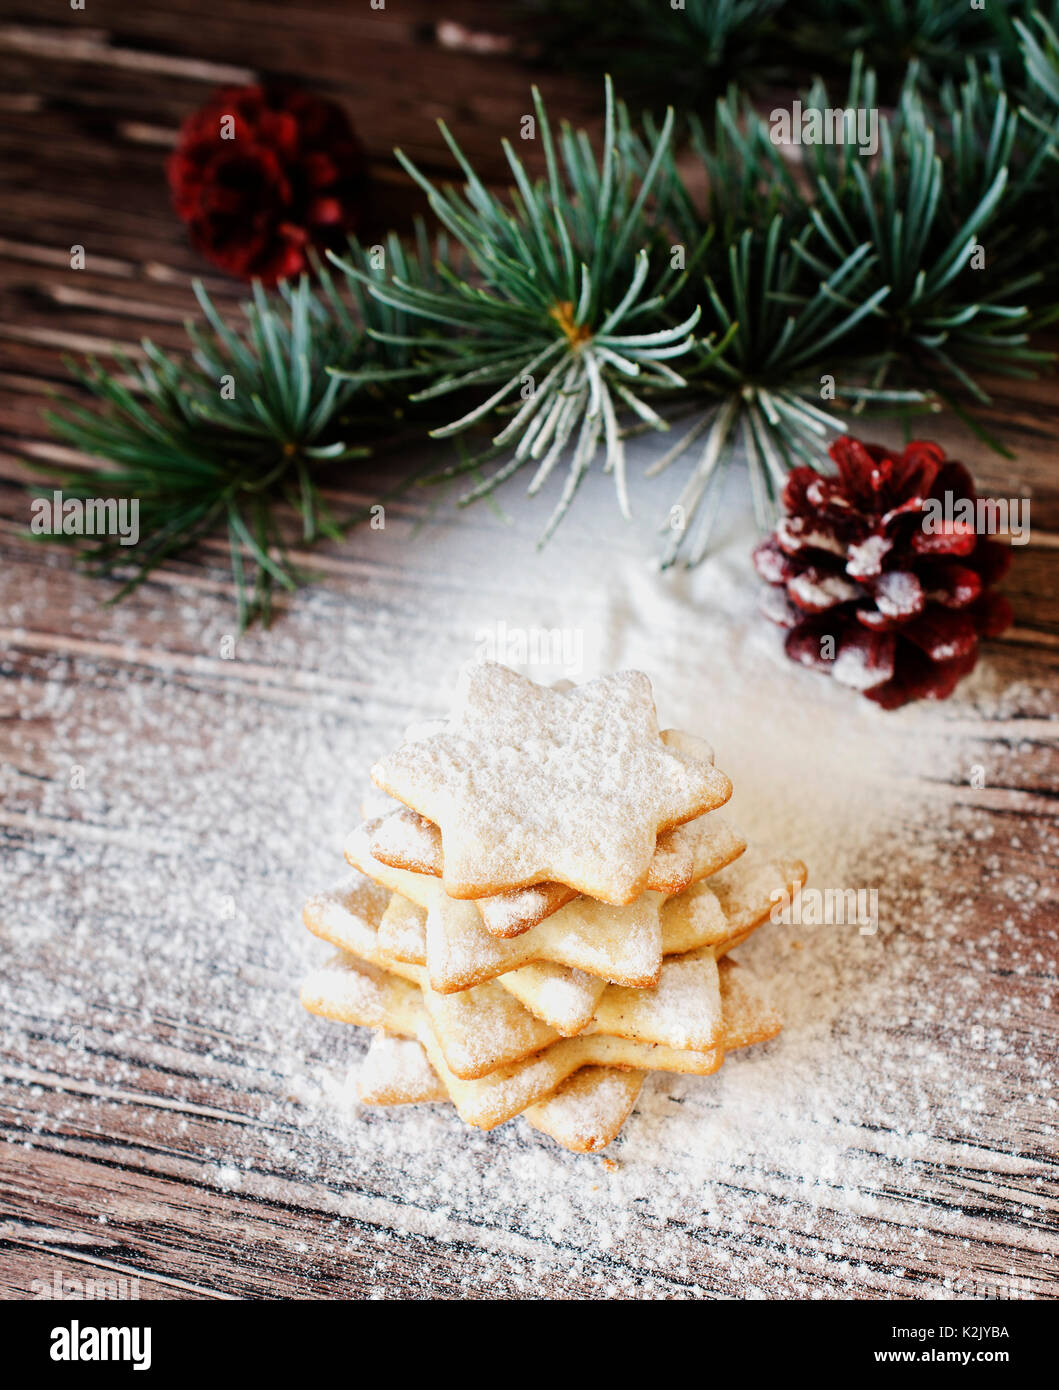 Jewish christmas nobody stock photos jewish christmas for Chocolate gingerbread twigs